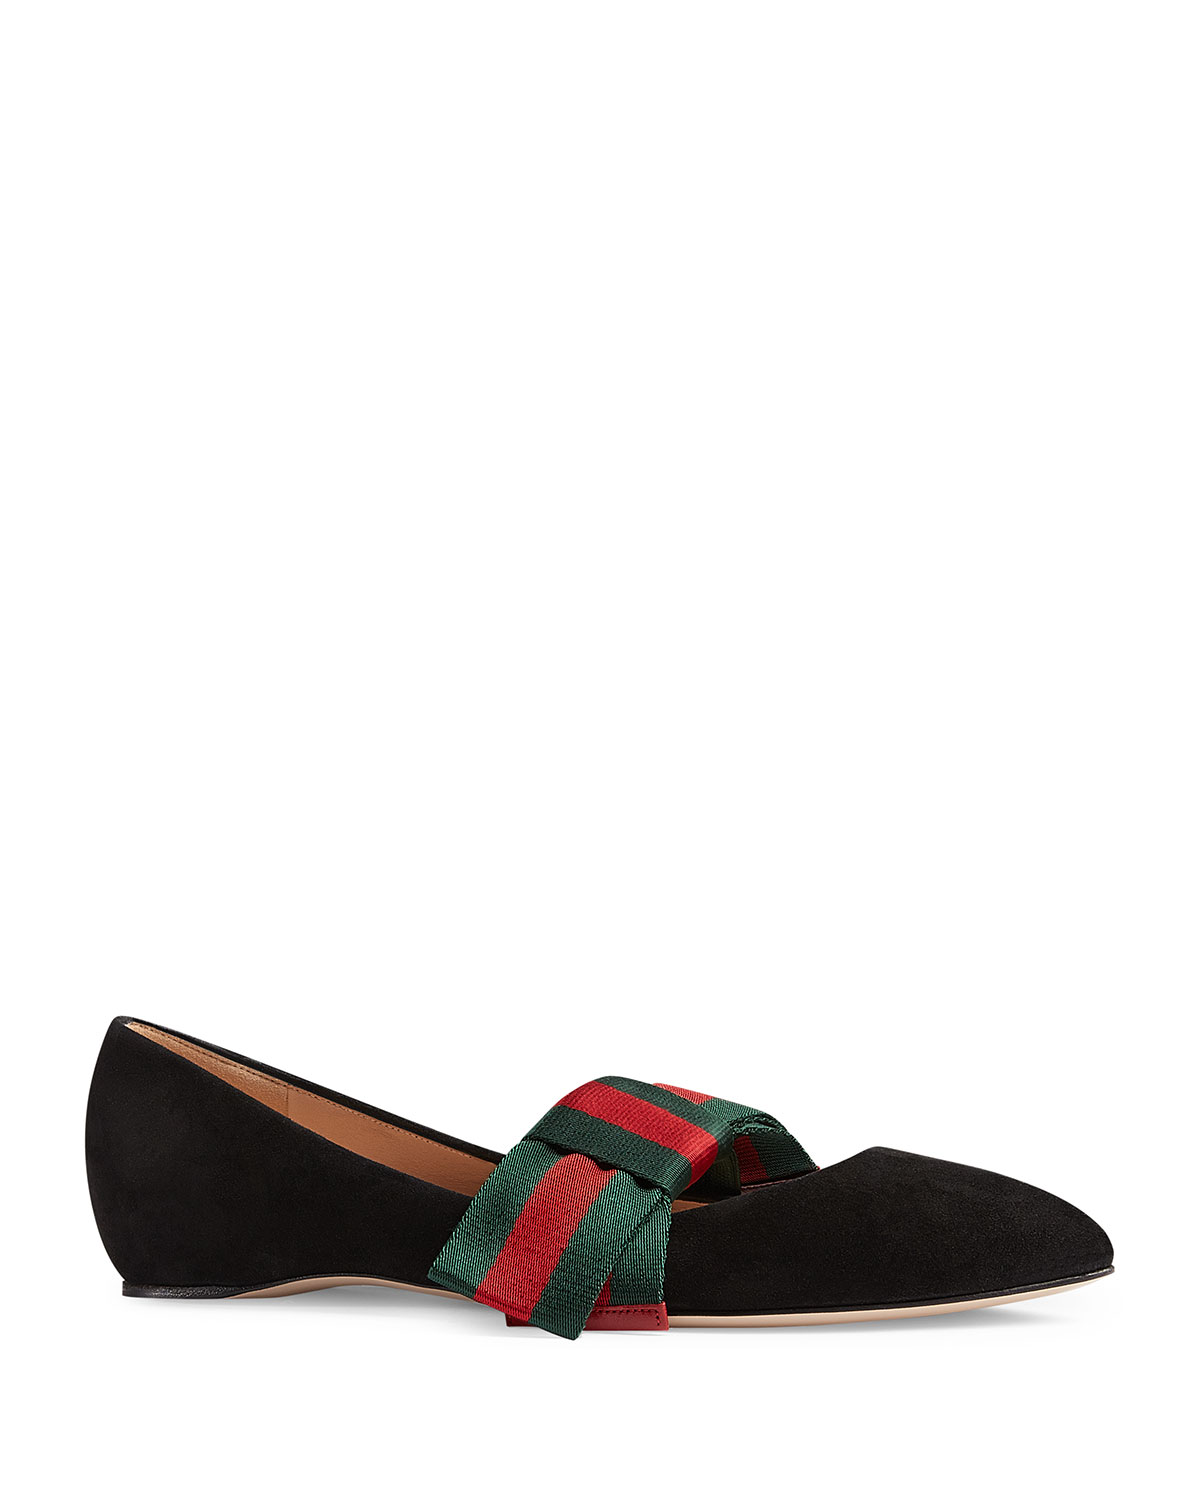 38ae66bb77a Gucci Web Bow Suede Ballet Flats